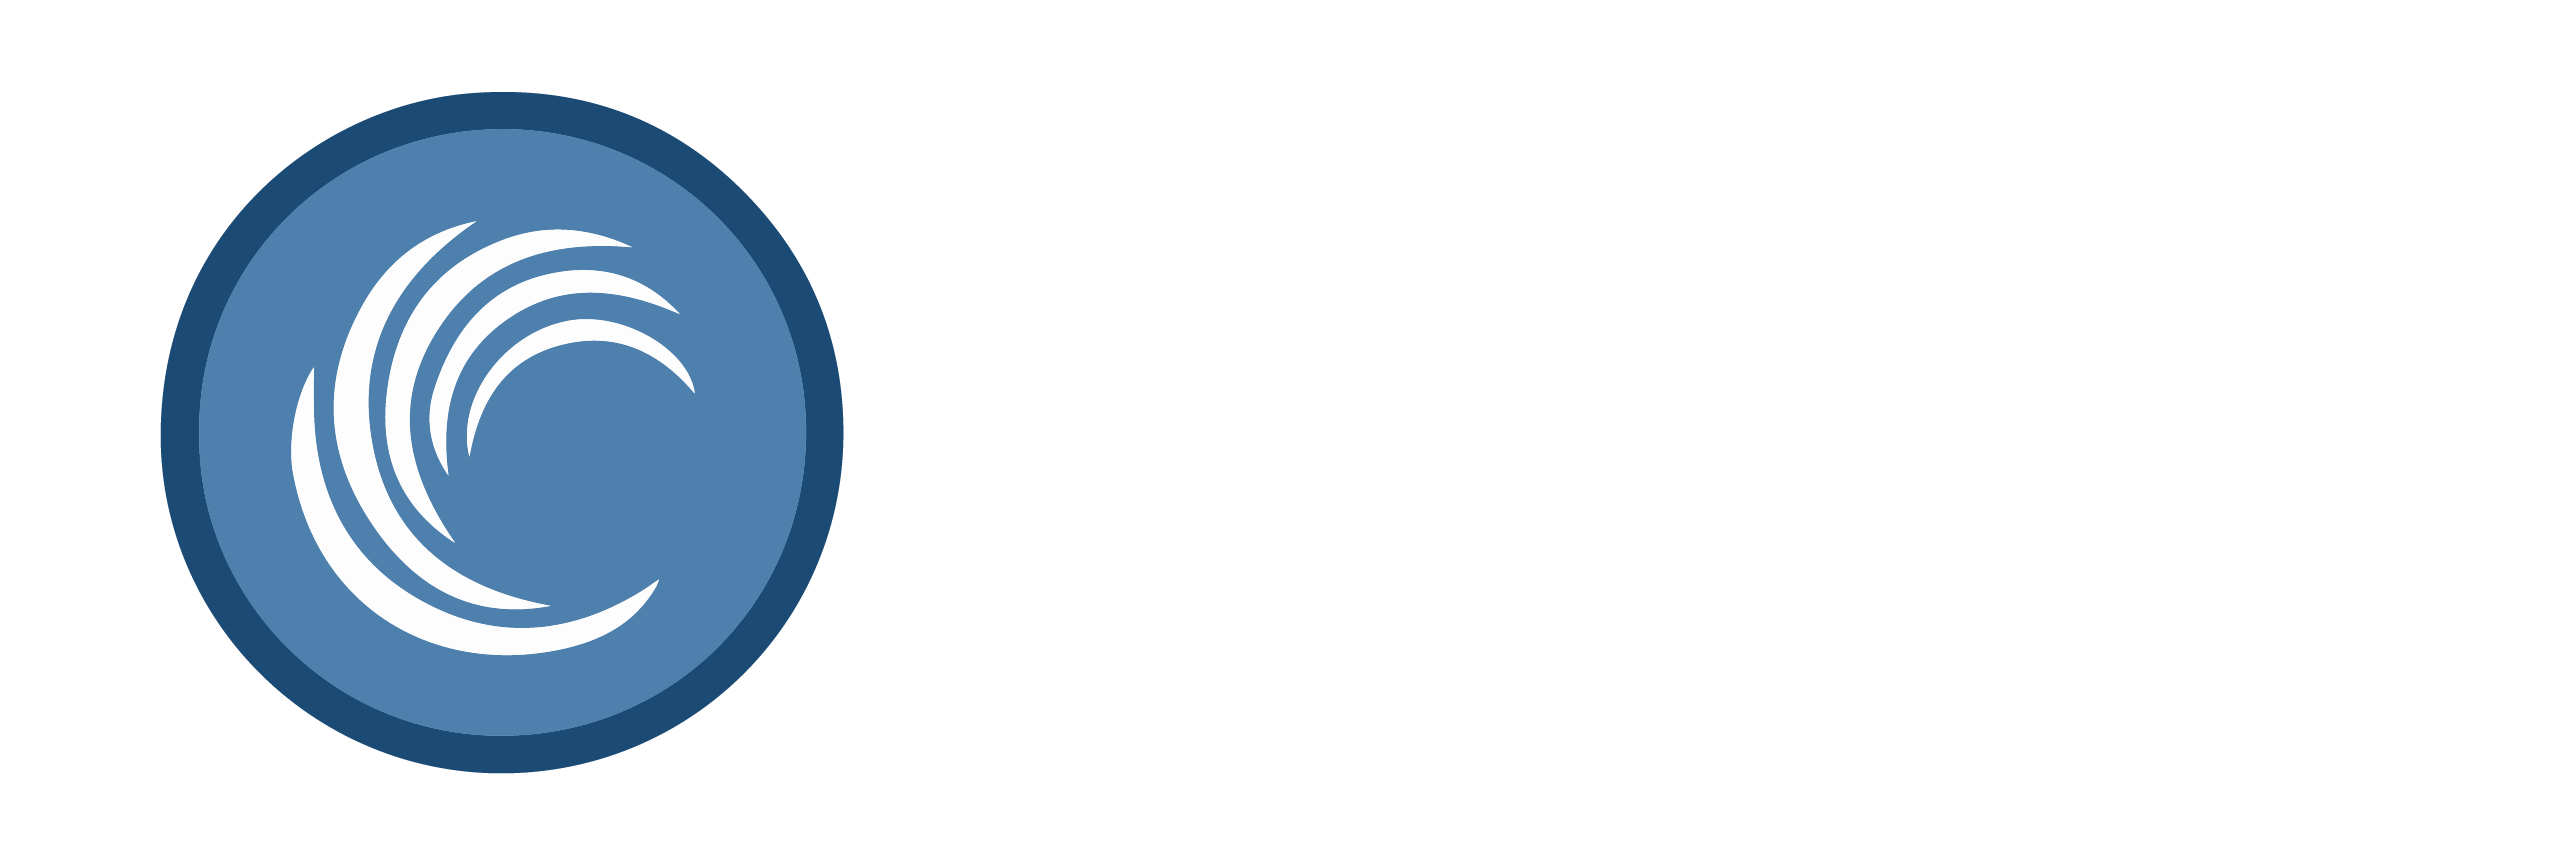 Corporate Technologies Group